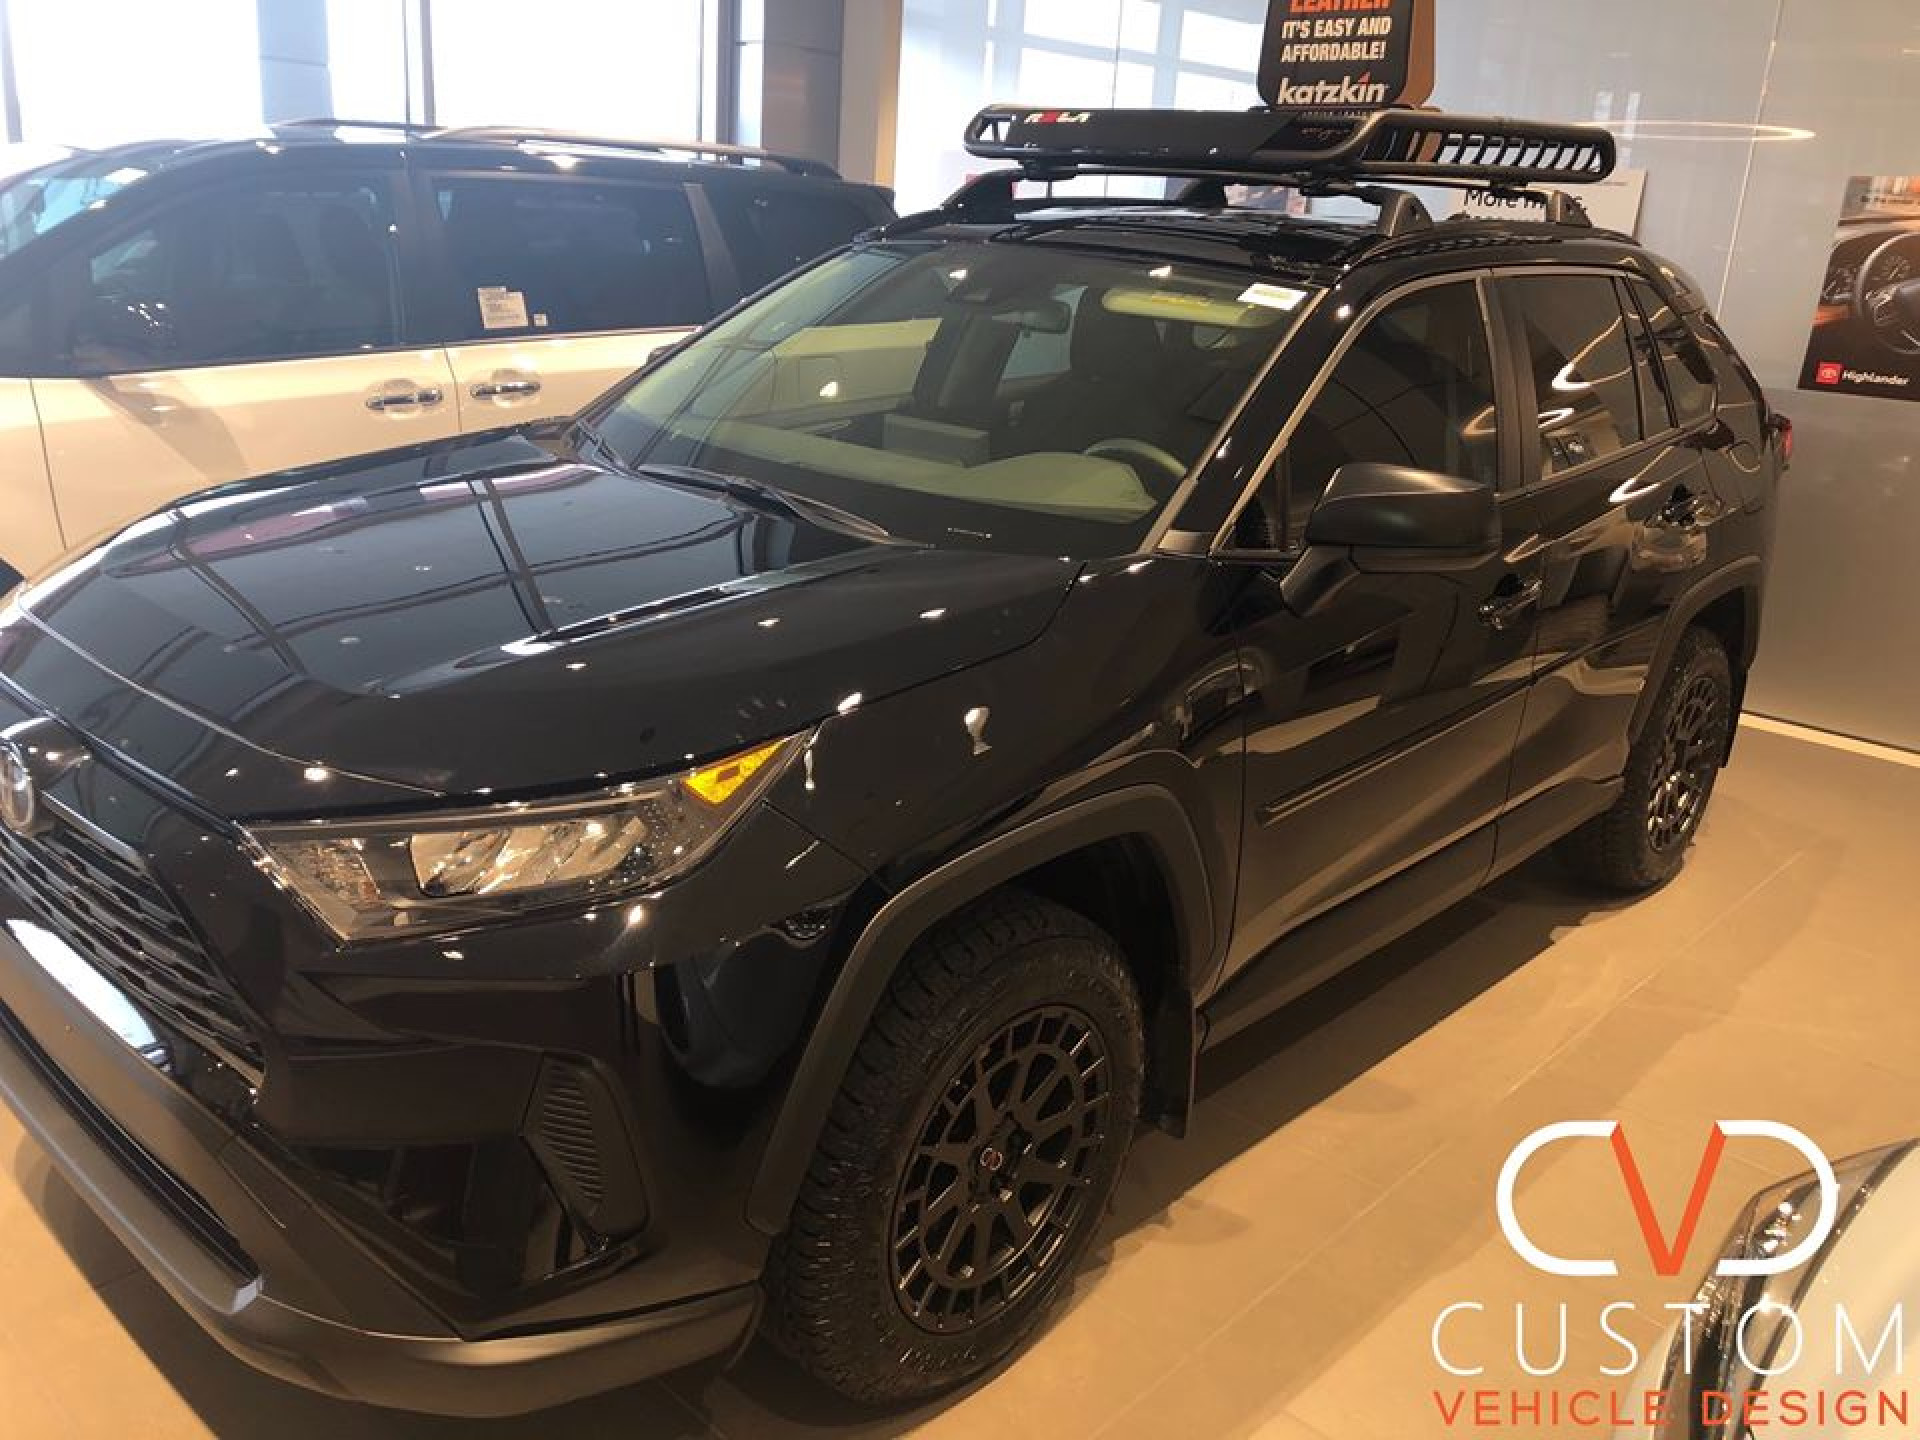 2020 Toyota RAV4 with (CVD Overland Package) Black Rhino wheels